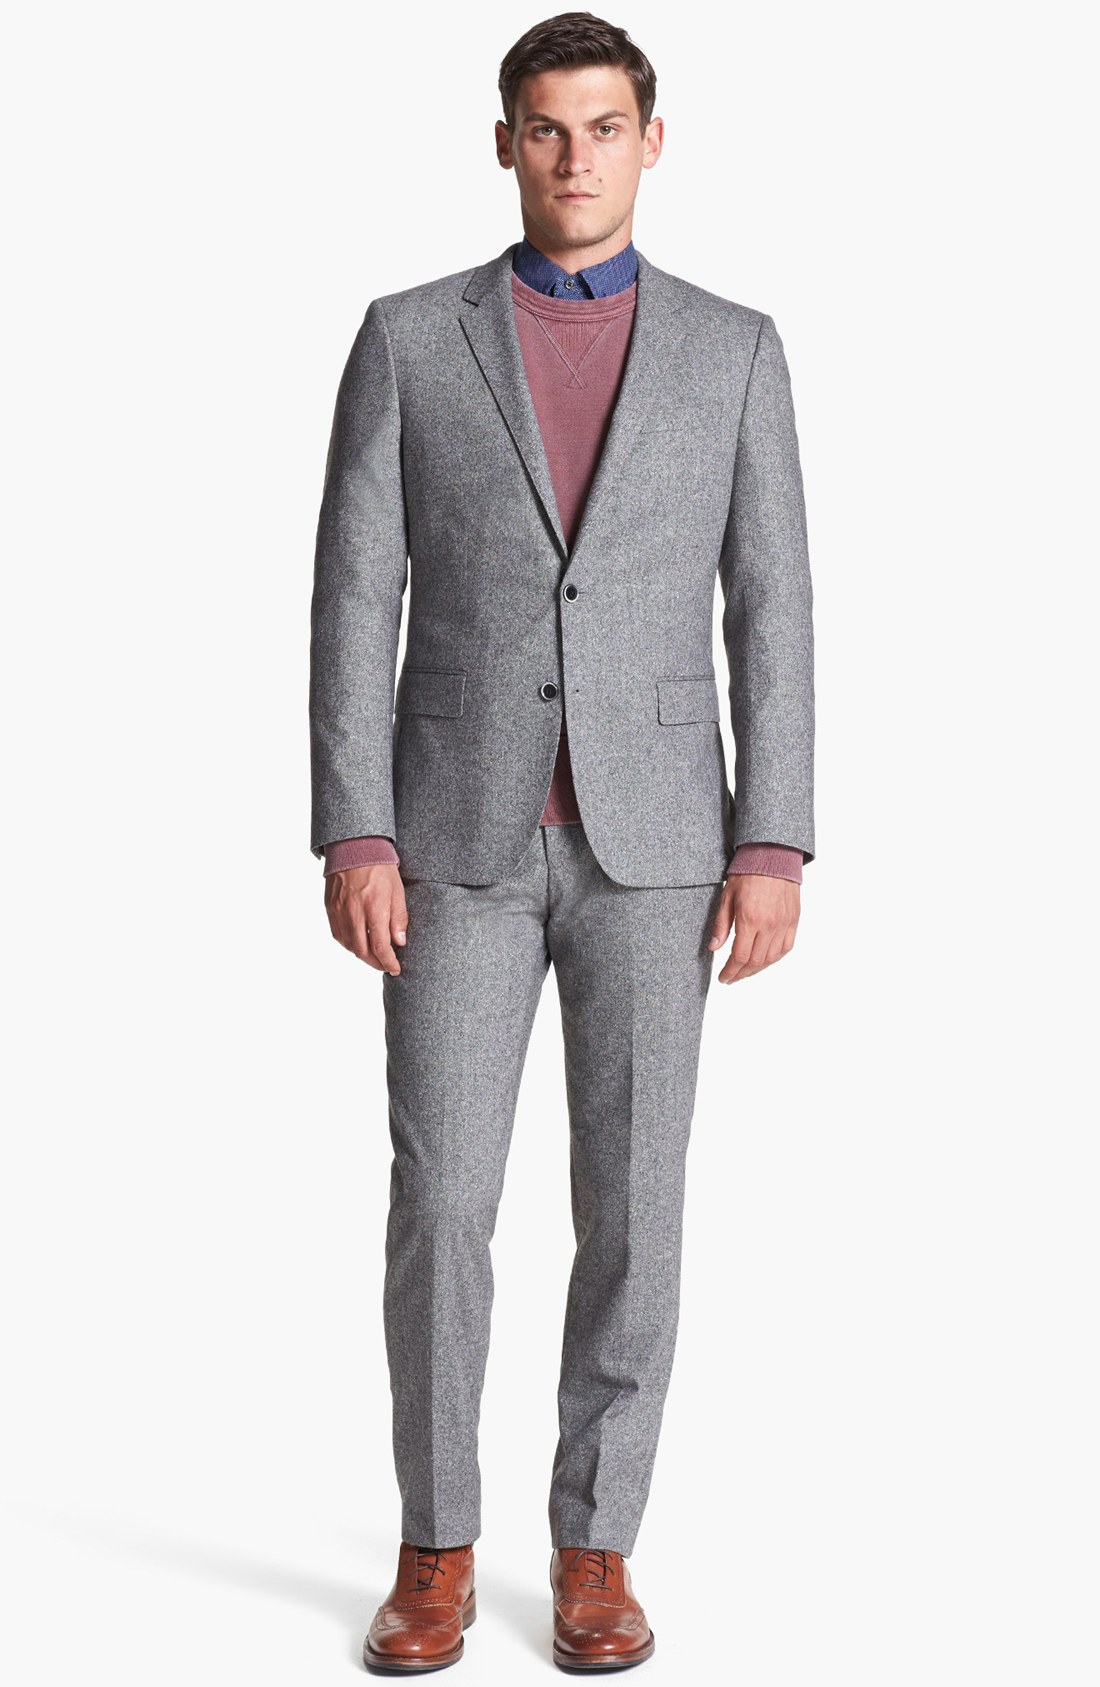 Boss by hugo boss hedge gense trim fit suit in gray for for Nordstrom men s dress shirt fit guide